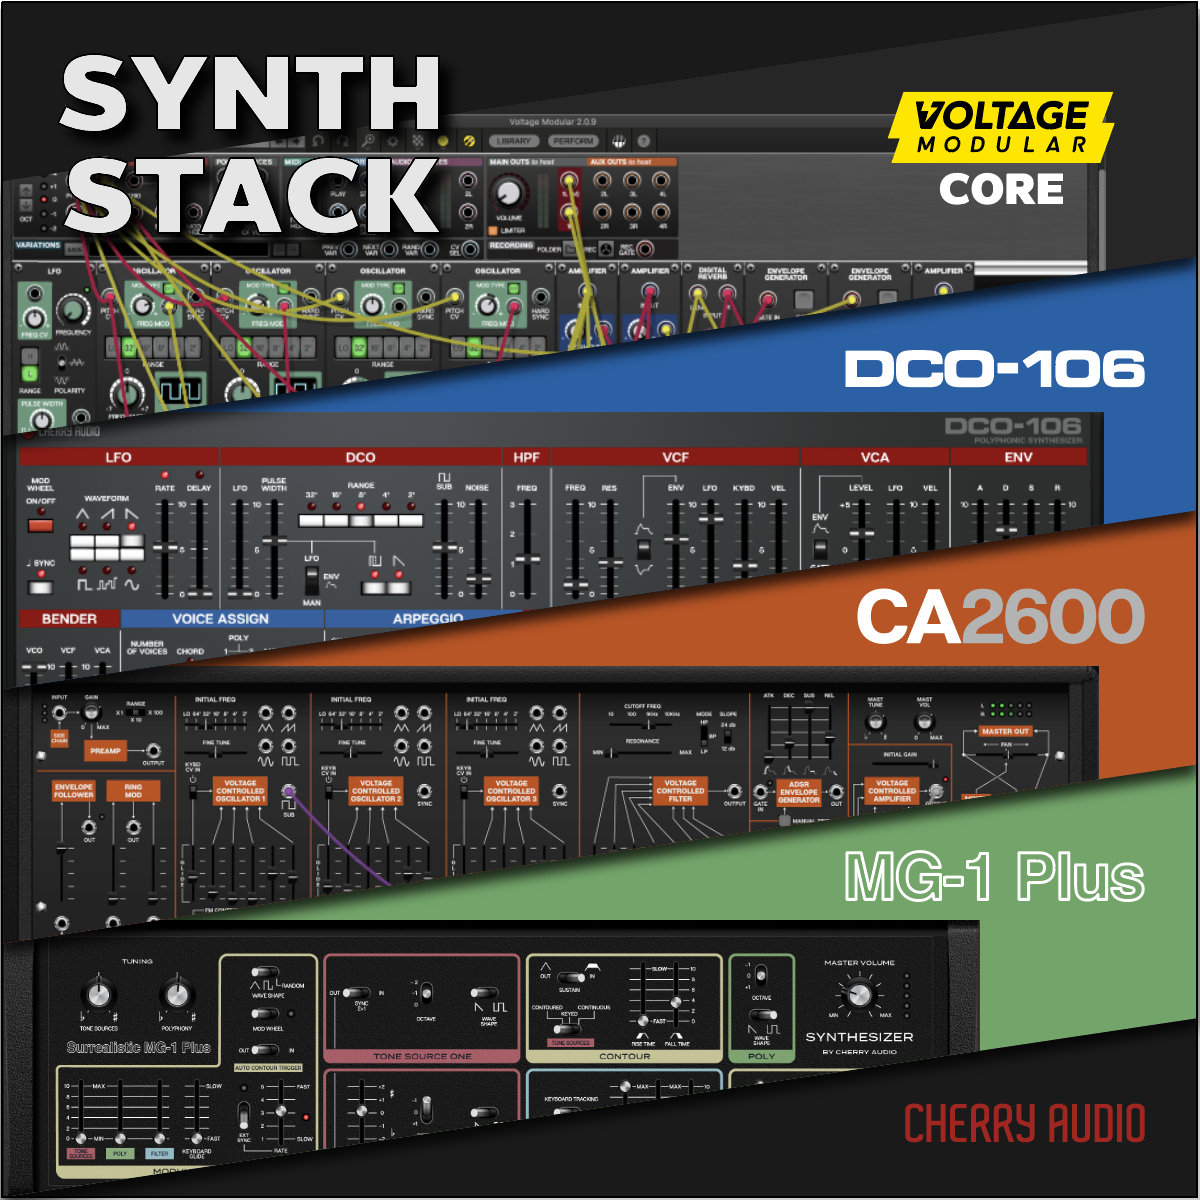 Cherry Audio Synth Stack